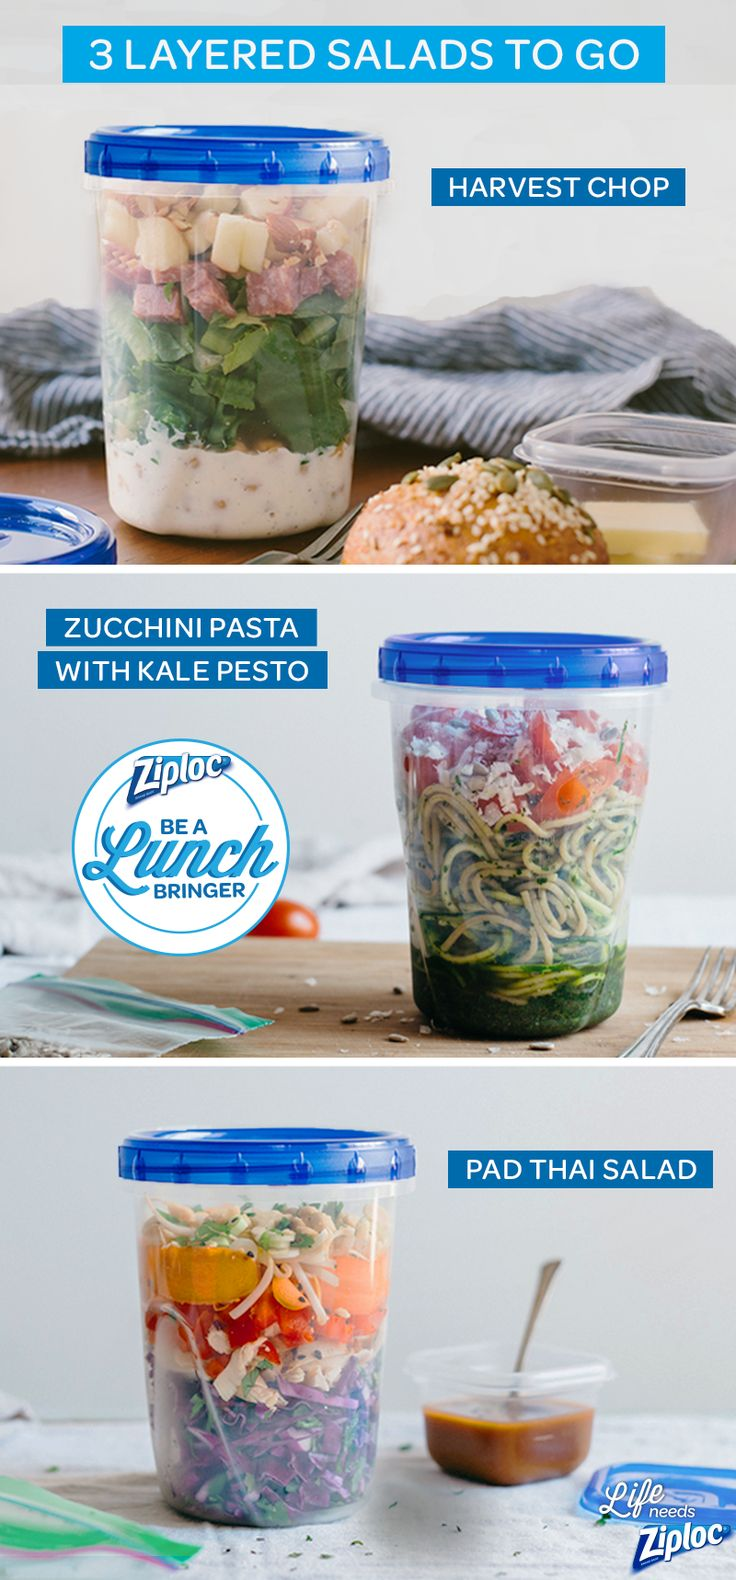 So smart for lunch! 3 easy-to-build, easy-to-carry, salad recipes. The Harvest Salad is sweet and savory with apples and salami, the Zucchini Noodle Pasta has a homemade kale pesto, and the Pad Thai Salad is packed full of colorful veggies. Layer and pack everything inside of a Ziploc® Twist 'N Loc® container so you don't have to worry about spills. Great options or a quick and healthy to-go meal.